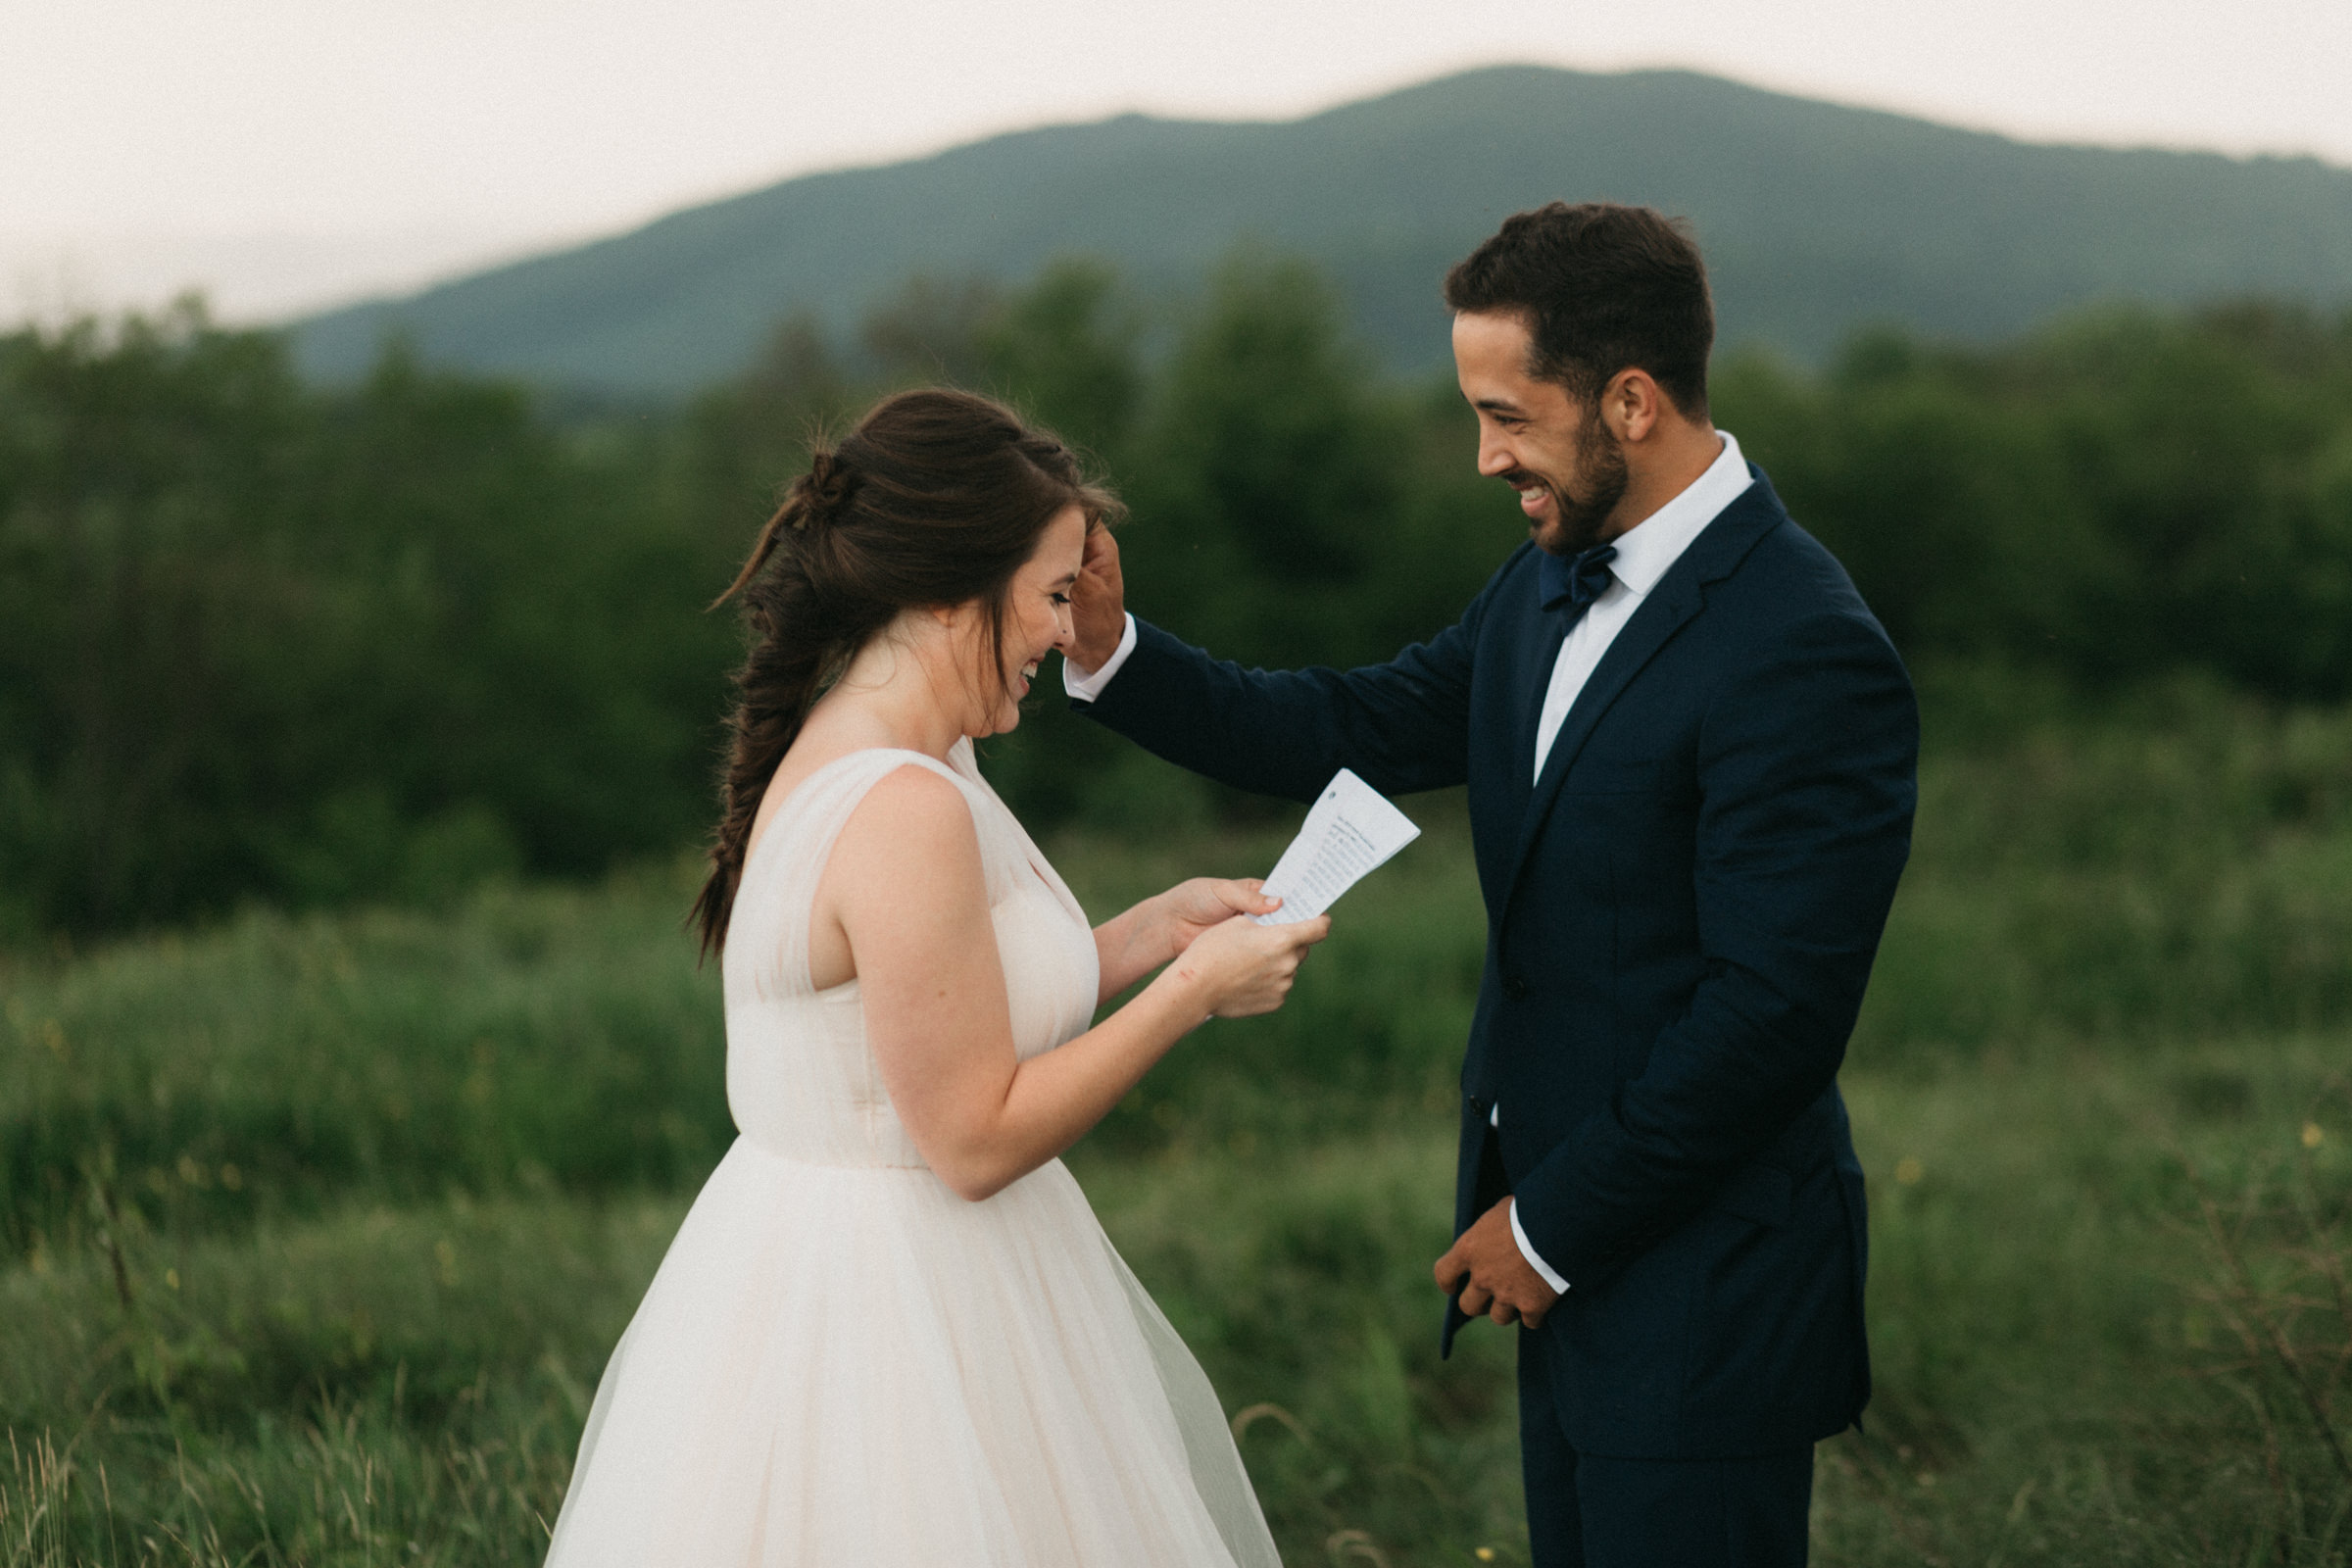 Bride and groom reading vows privately in a letter before they get married.